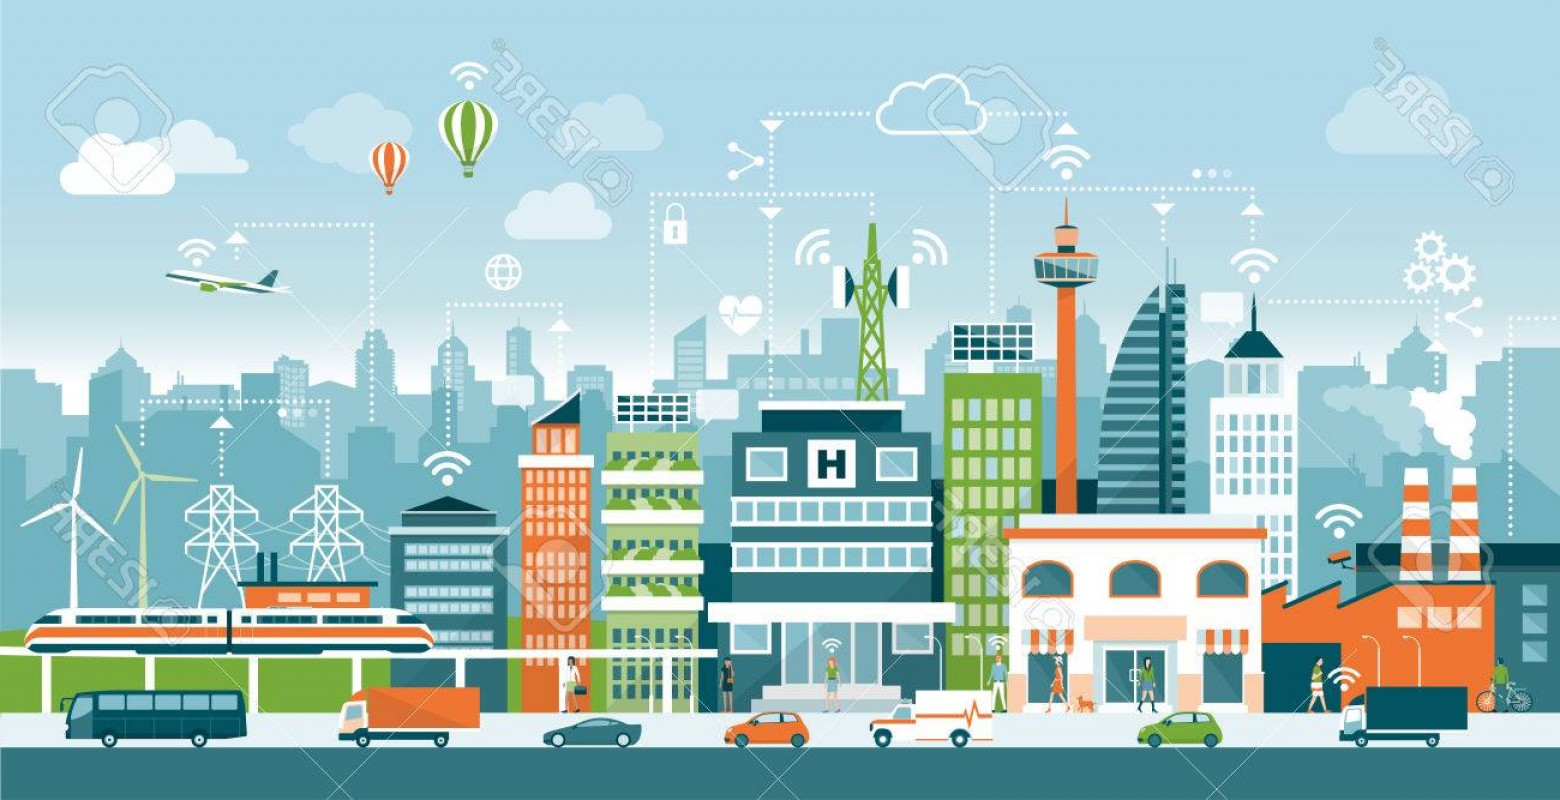 City Vector: Photostock Vector Smart City With Contemporary Buildings People And Traffic Networks Connection And Internet Of Things